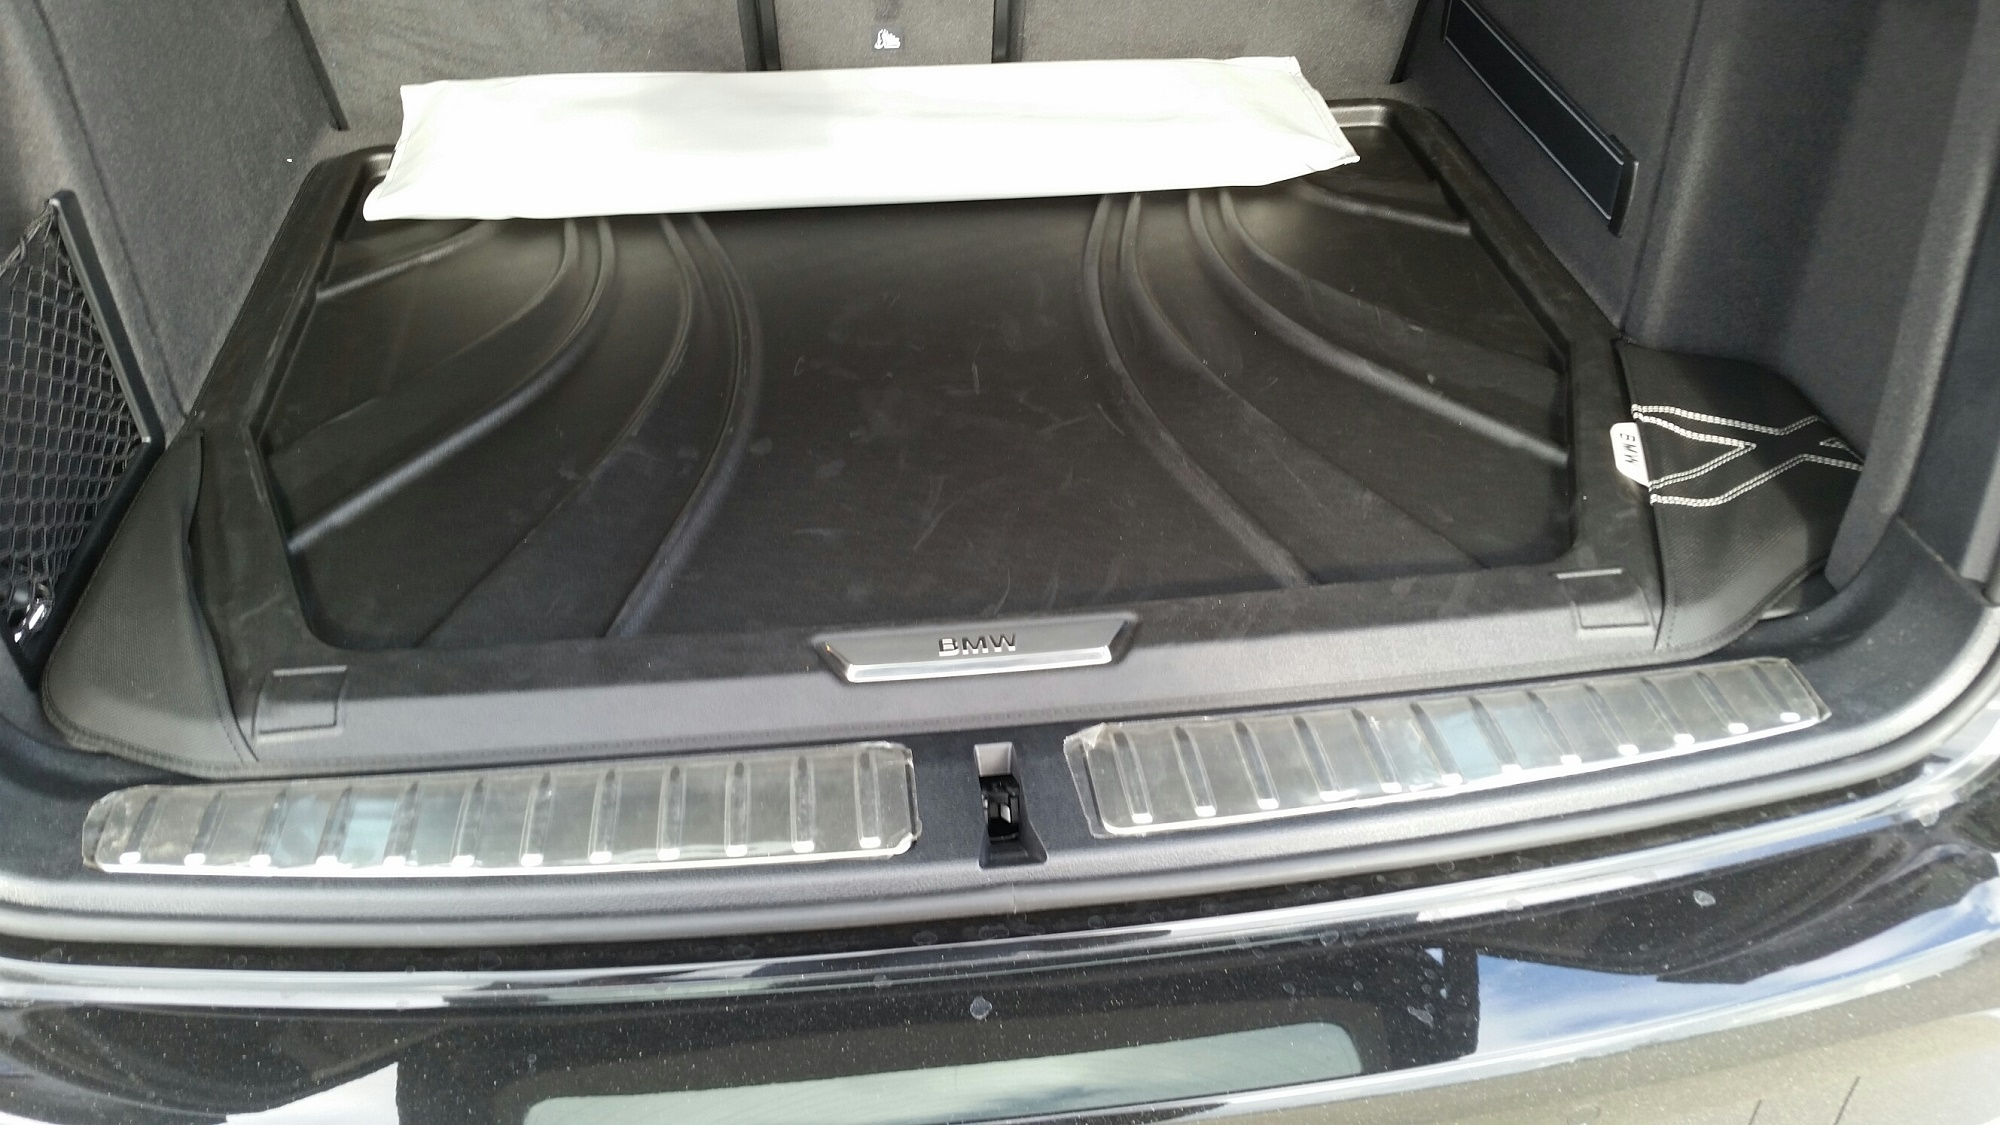 Cargo liner pic attached images